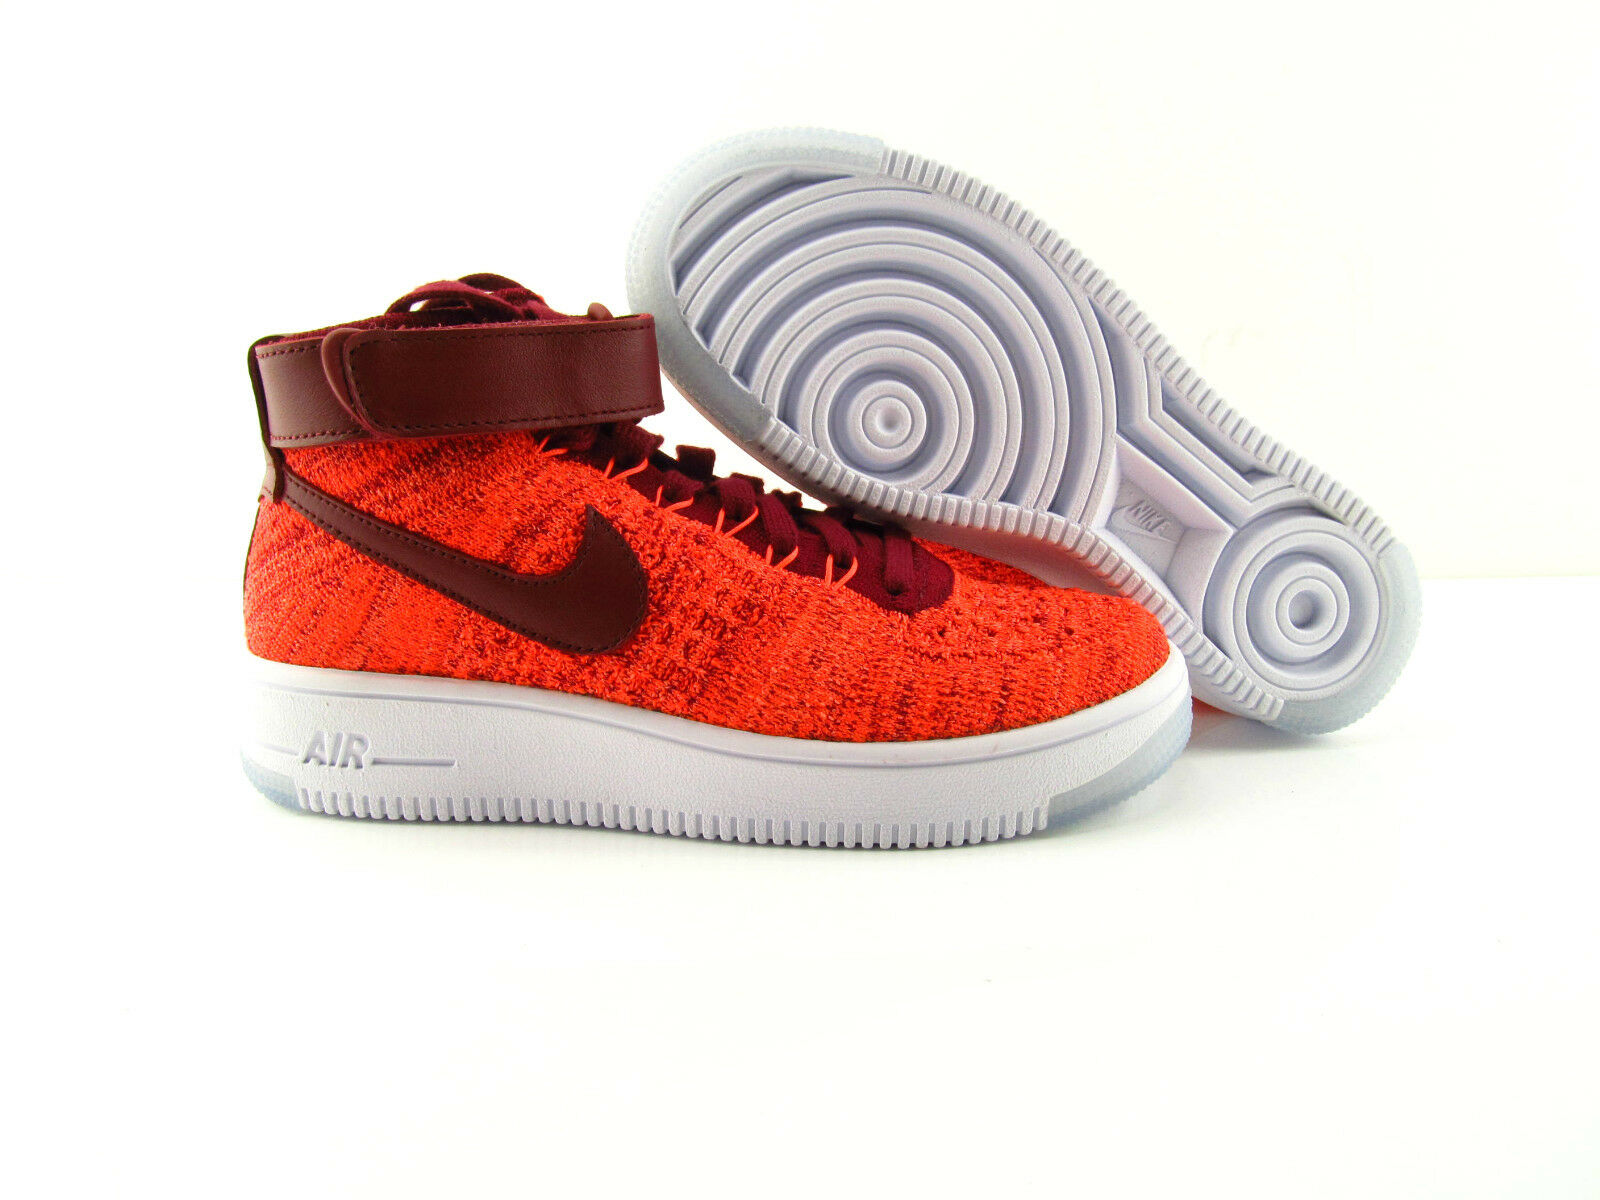 Nike Air Force 1 Sneakers AF1 Flyknit Crimson ROT Sneakers 1 New UK_7.5 US_10 EUR 42 d740df